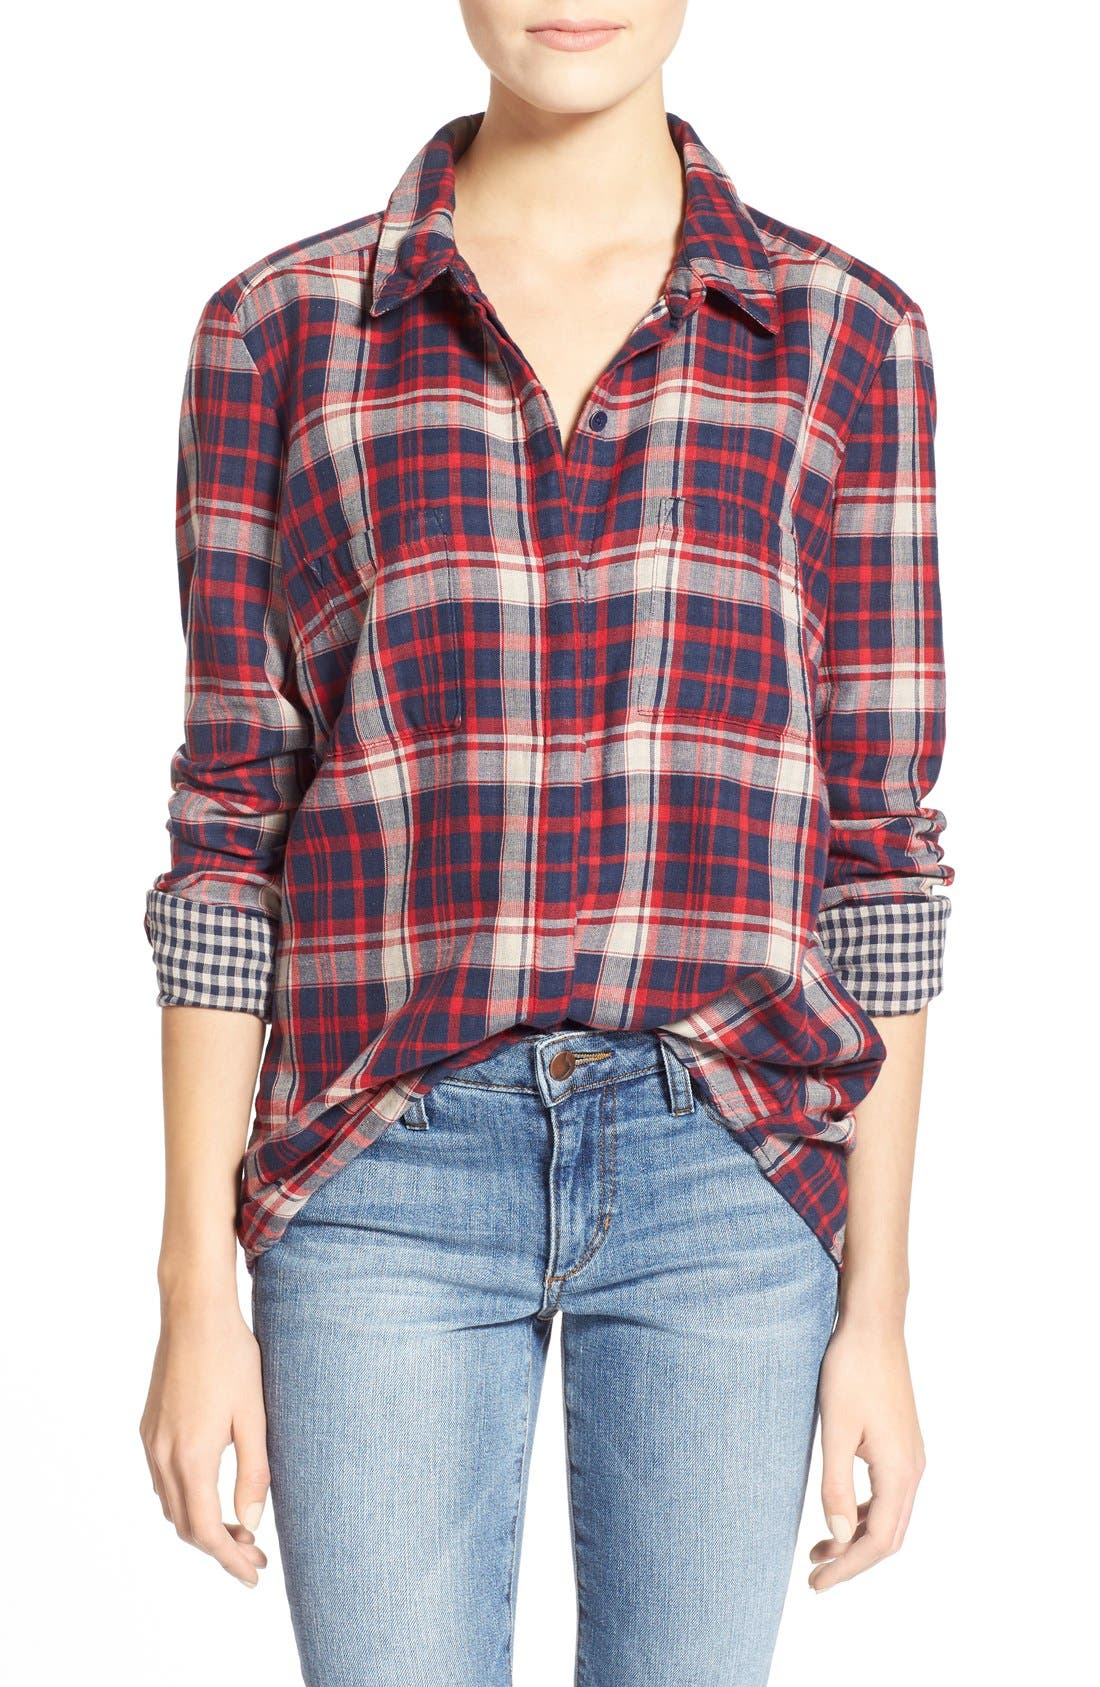 Alternate Image 1 Selected - Splendid 'Hunter' Plaid Shirt